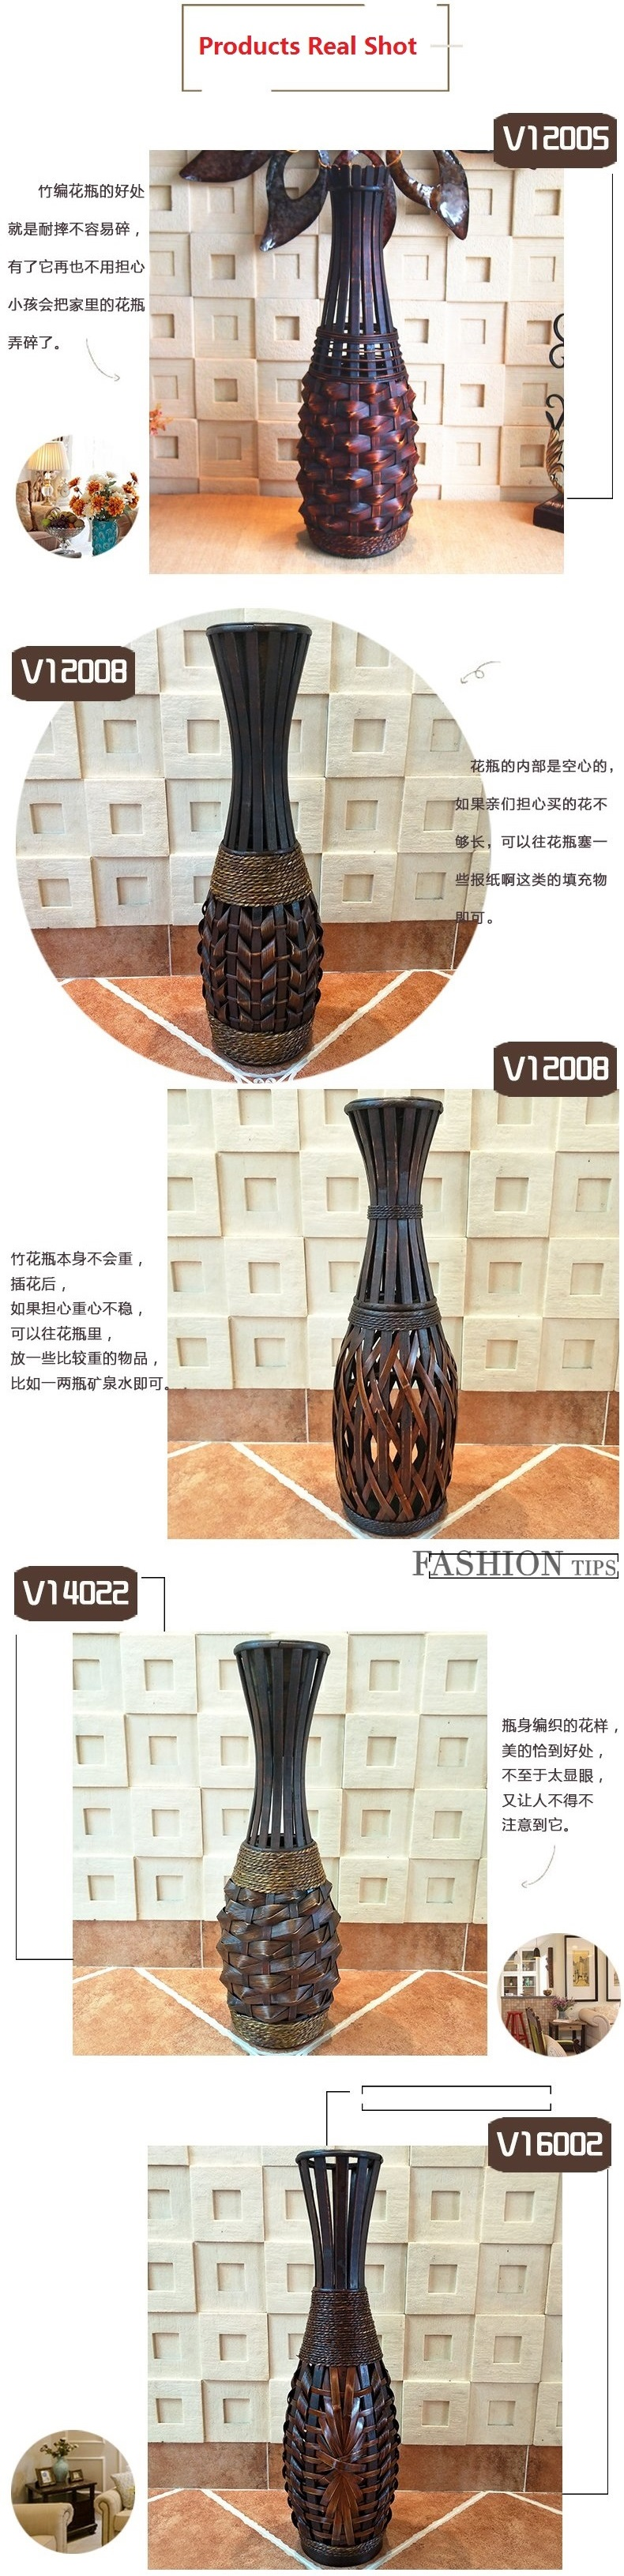 New Classic Floor Art Bamboo Vase Fashion Home Decor Craft